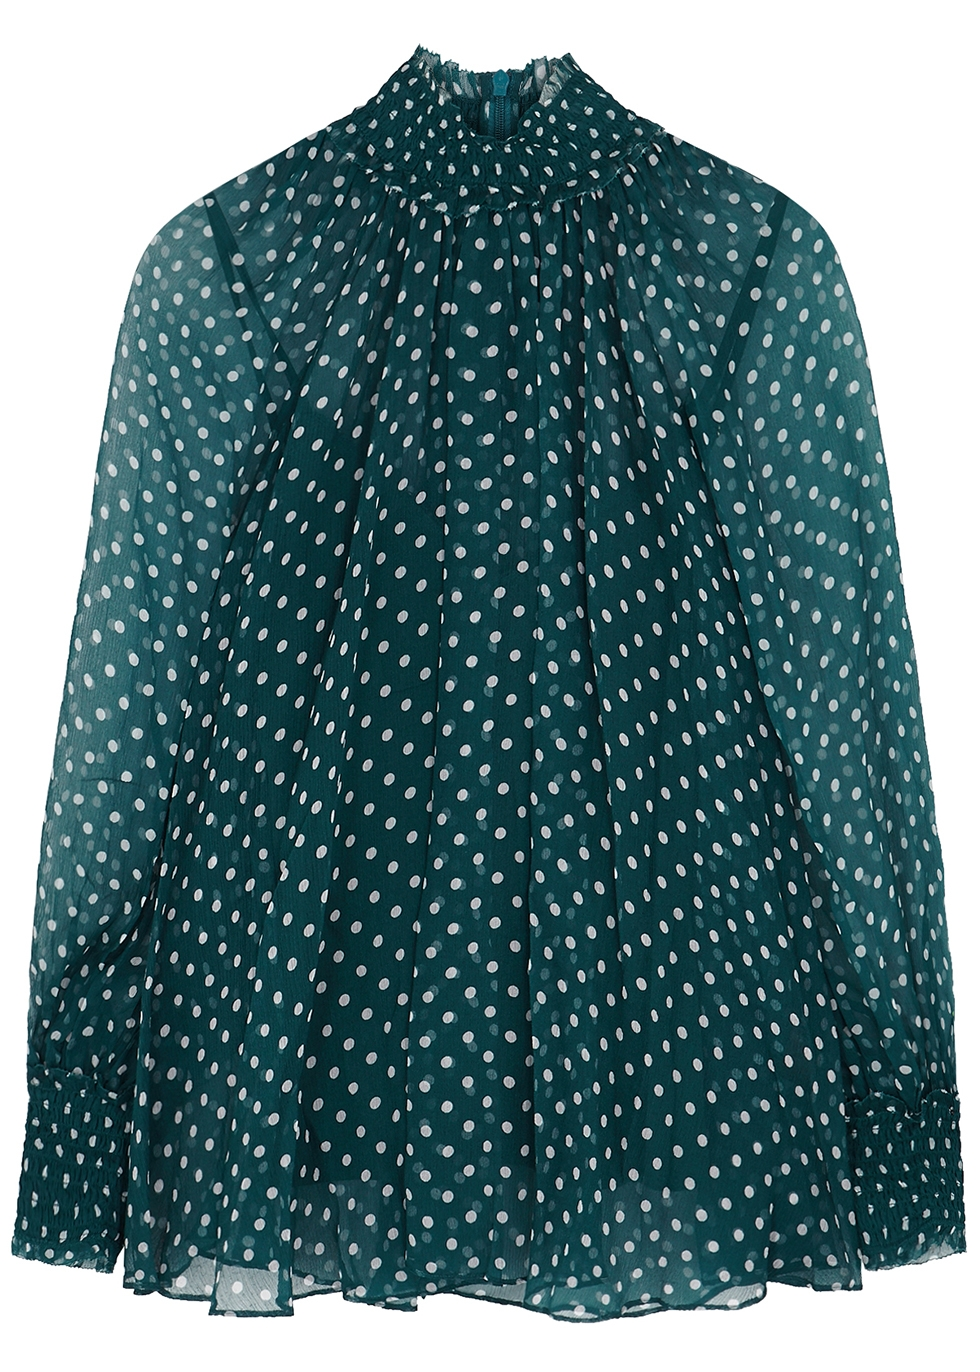 Moncur teal polka-dot silk top - Zimmermann